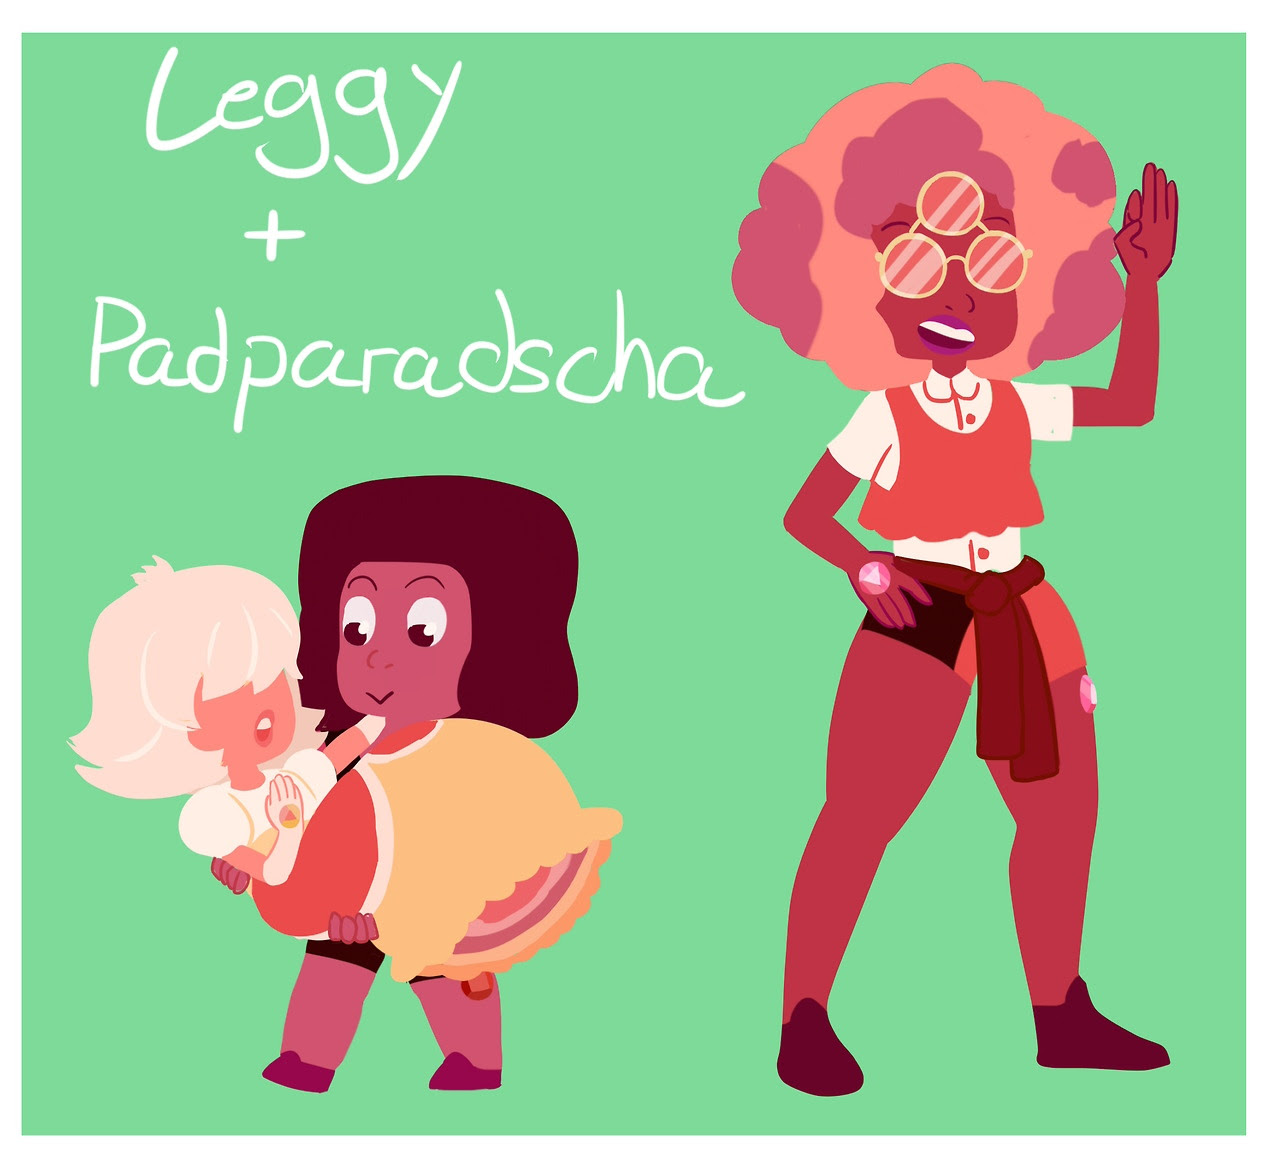 Pepper Sauce and Leggy